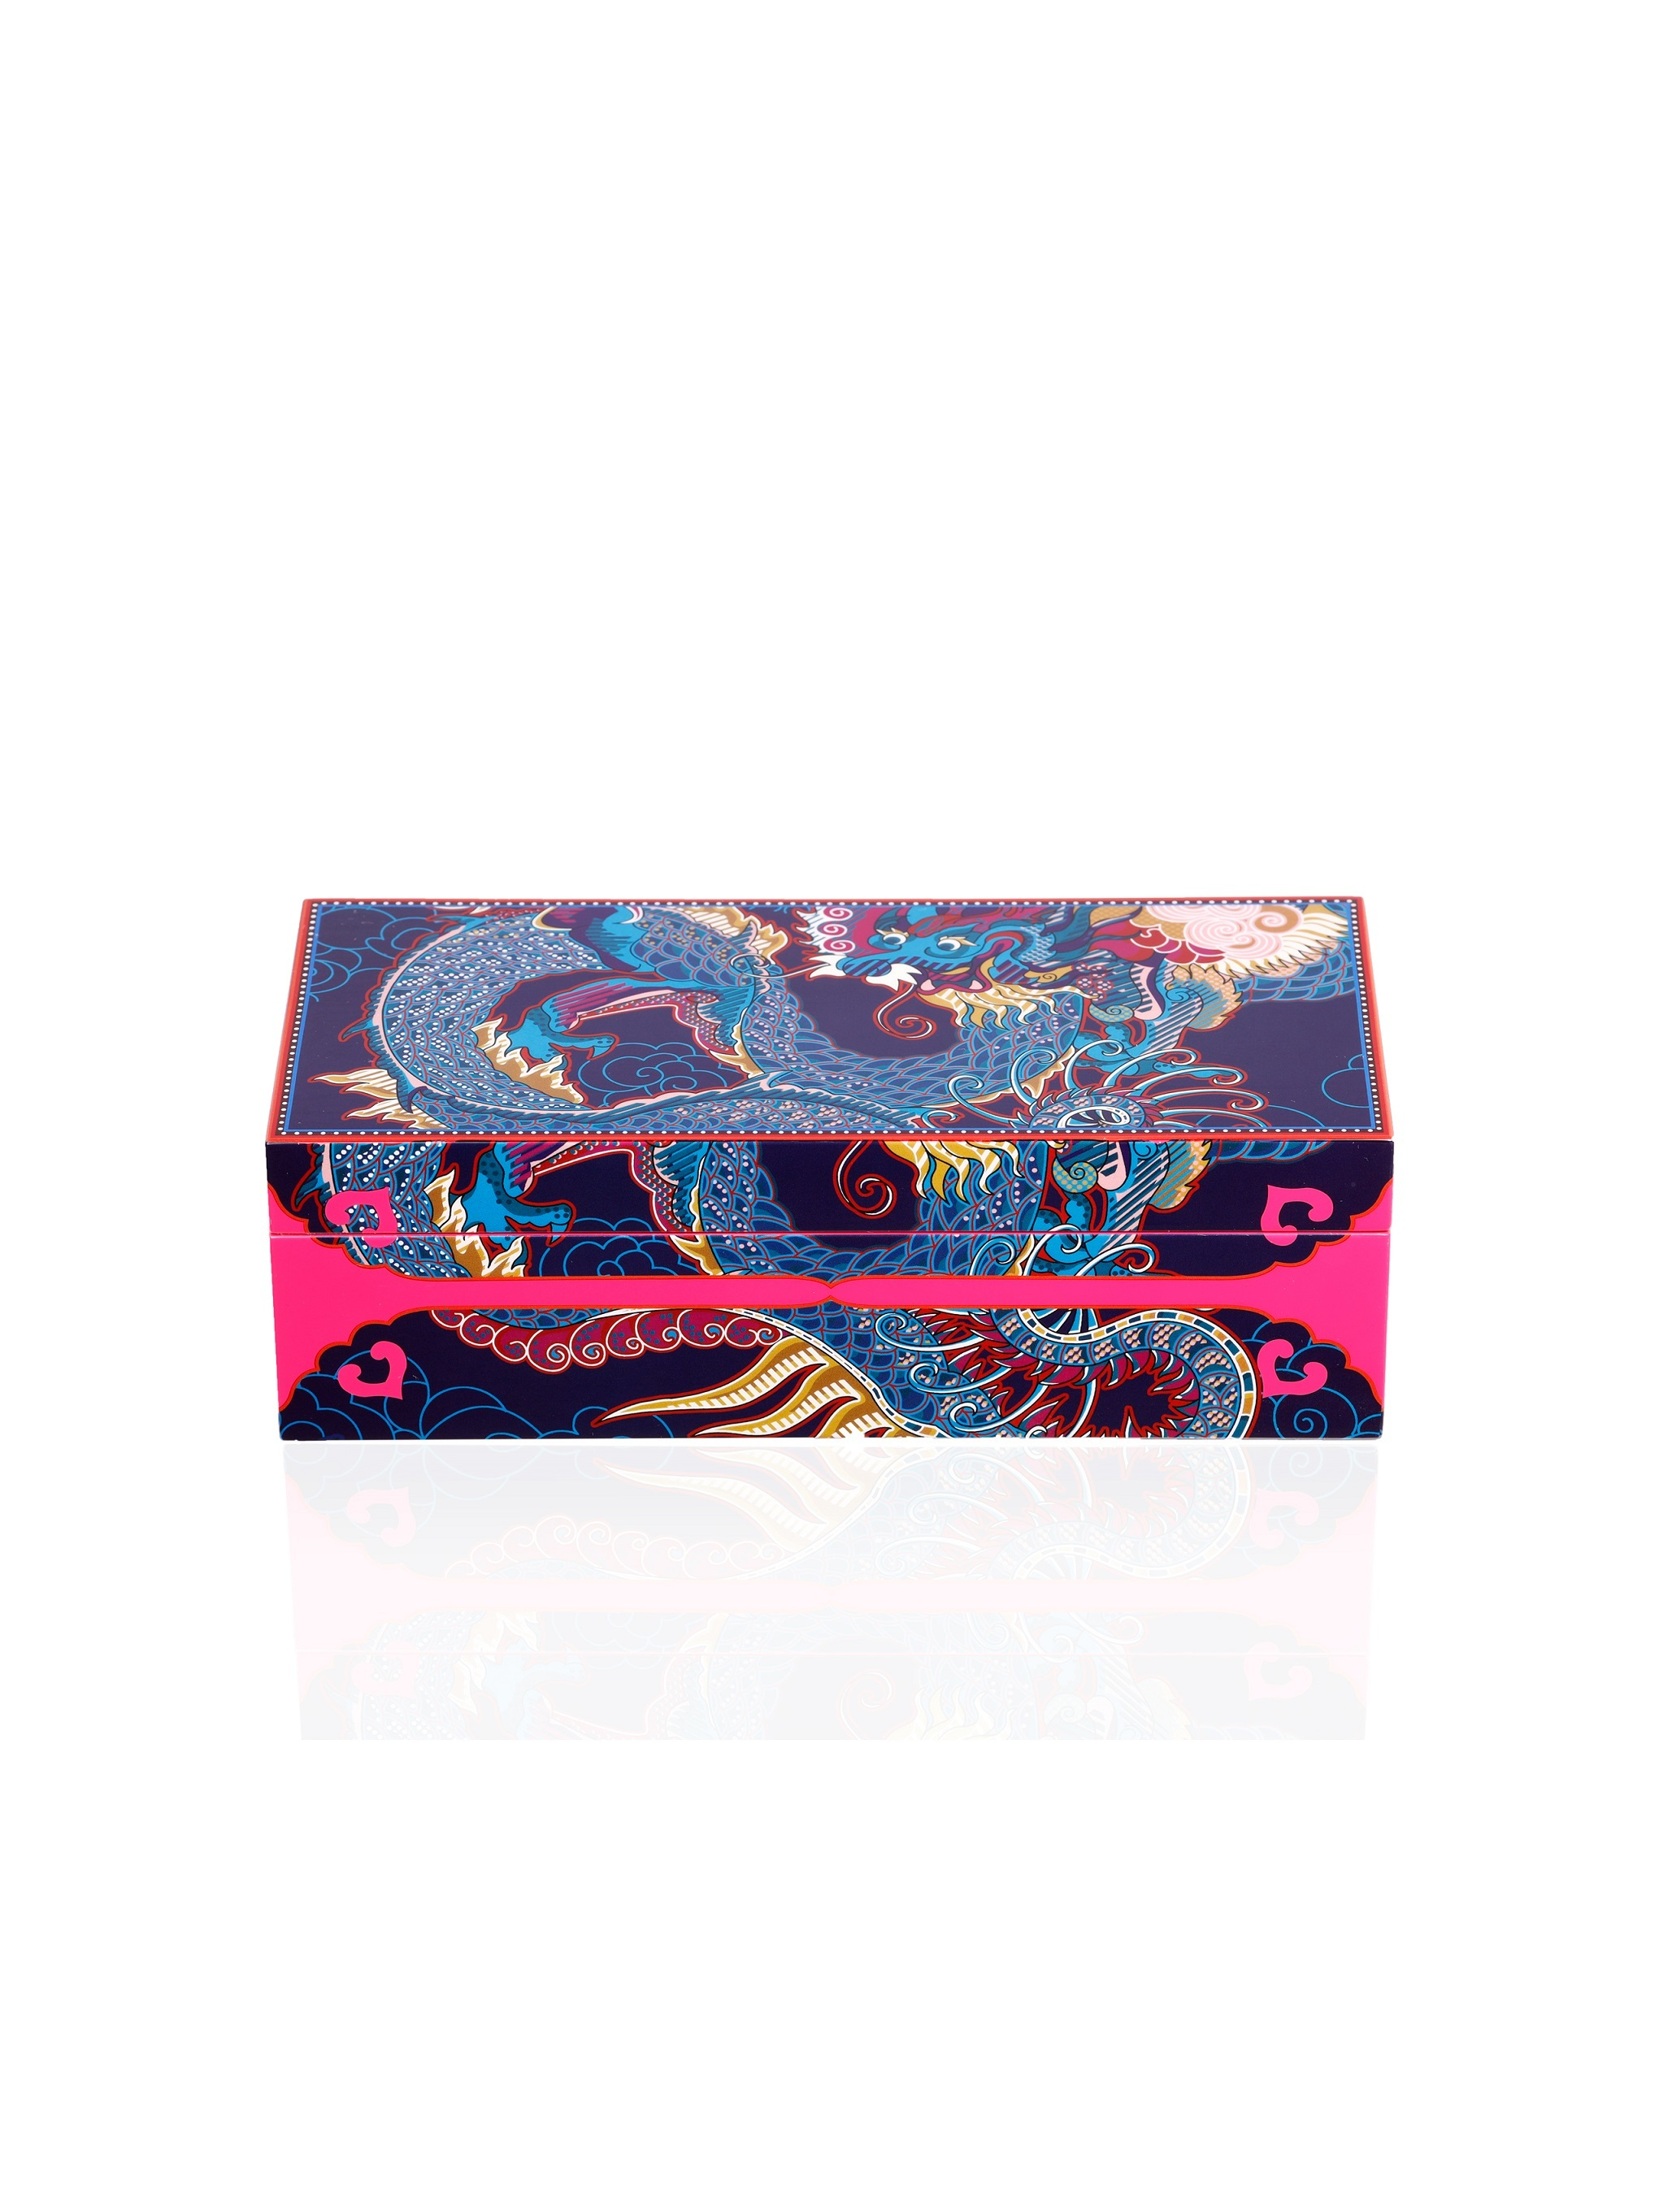 Vivid Dragon Lacquer Jewellery Box M